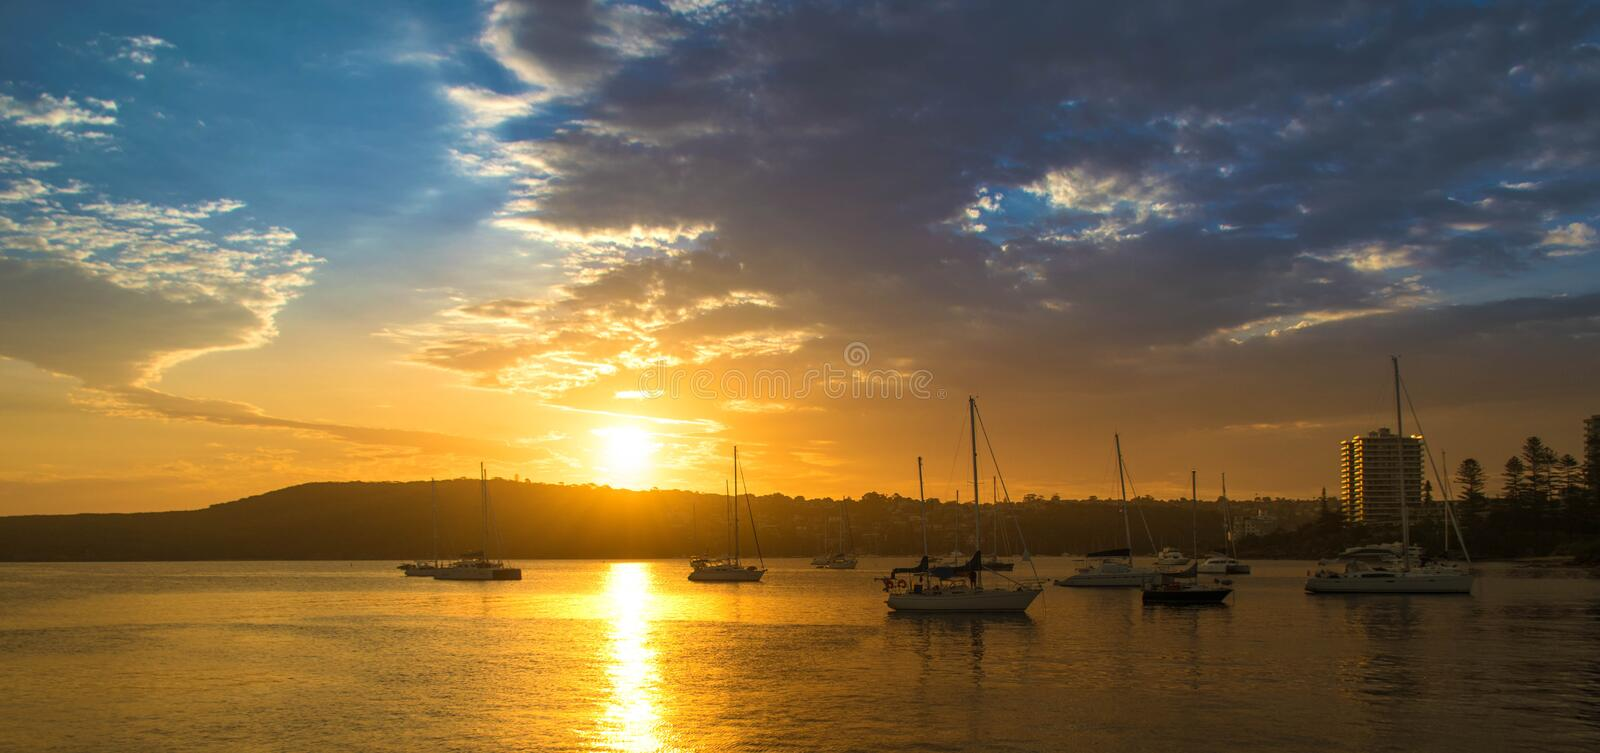 Sunset in the harbour of Manly. Sunset in Manly, just outside Sydney royalty free stock photos